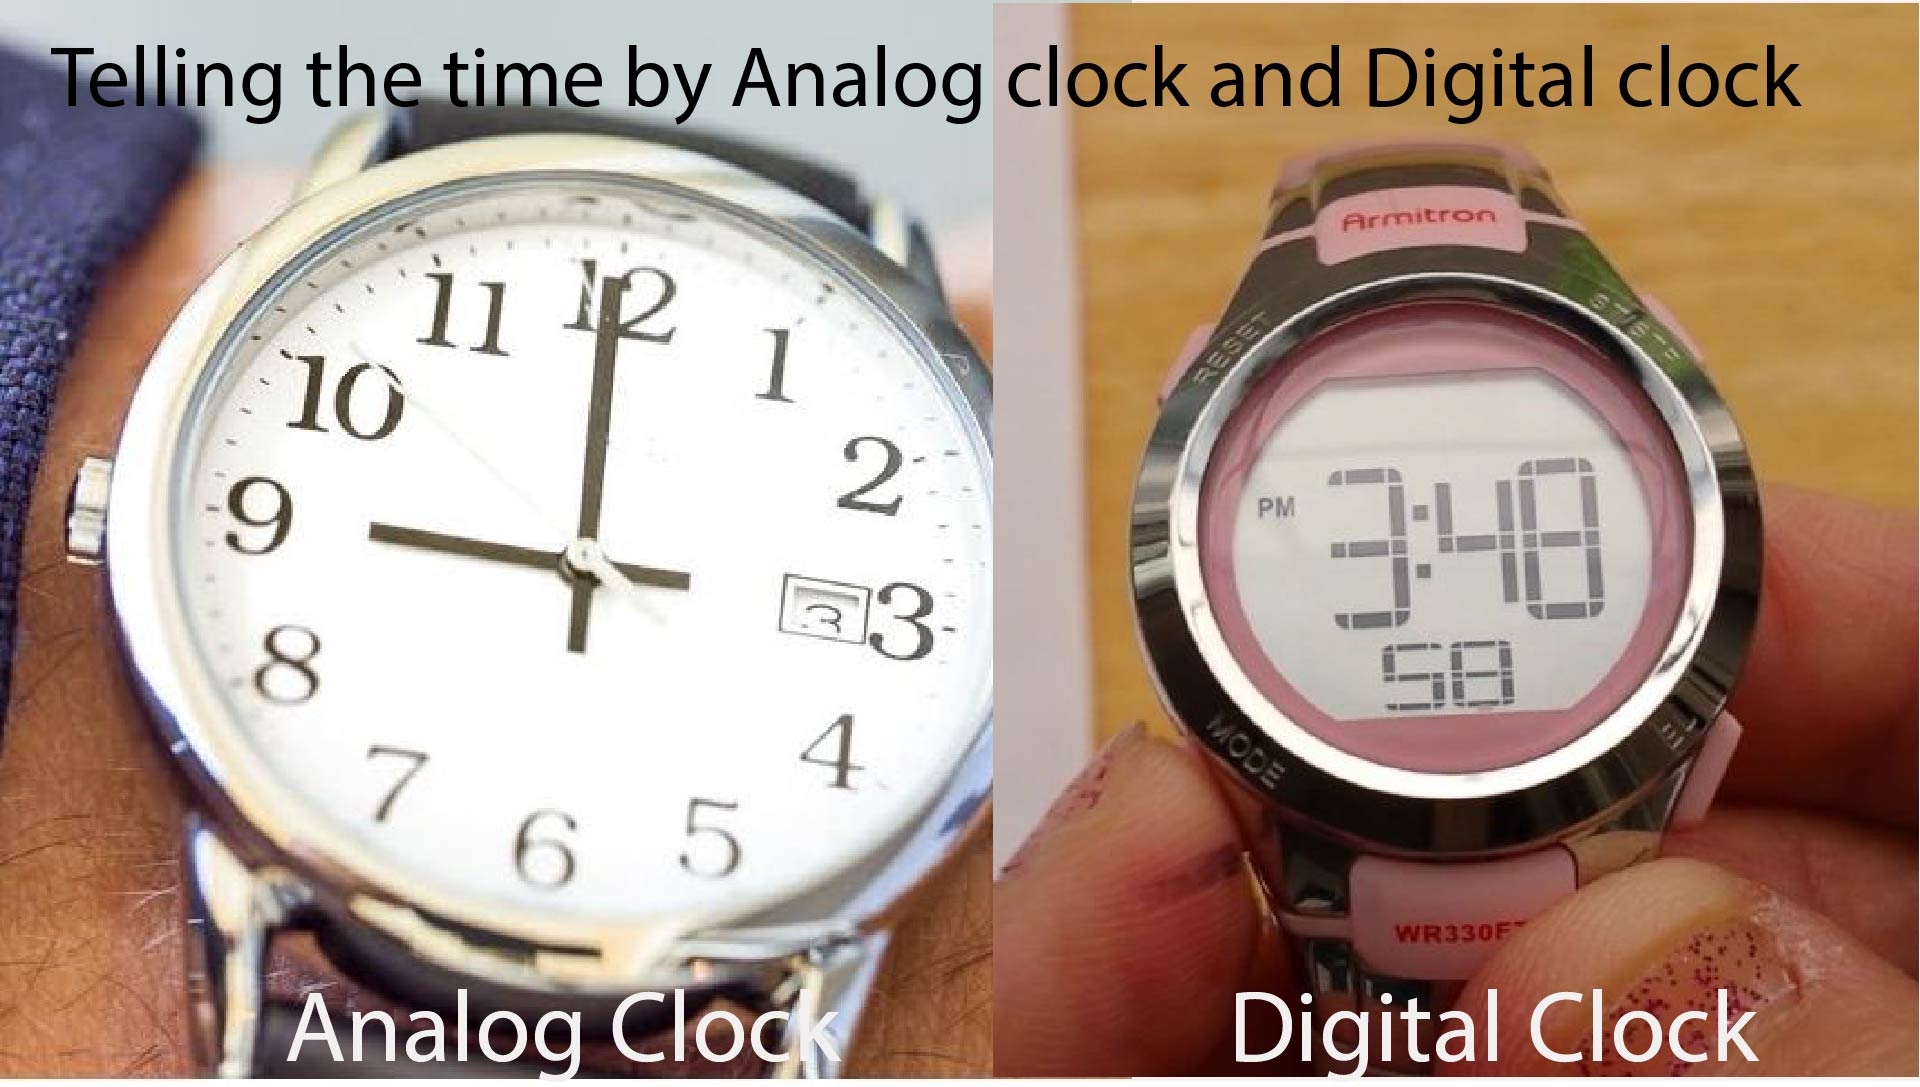 Telling the time by Analog clock and Digital clock